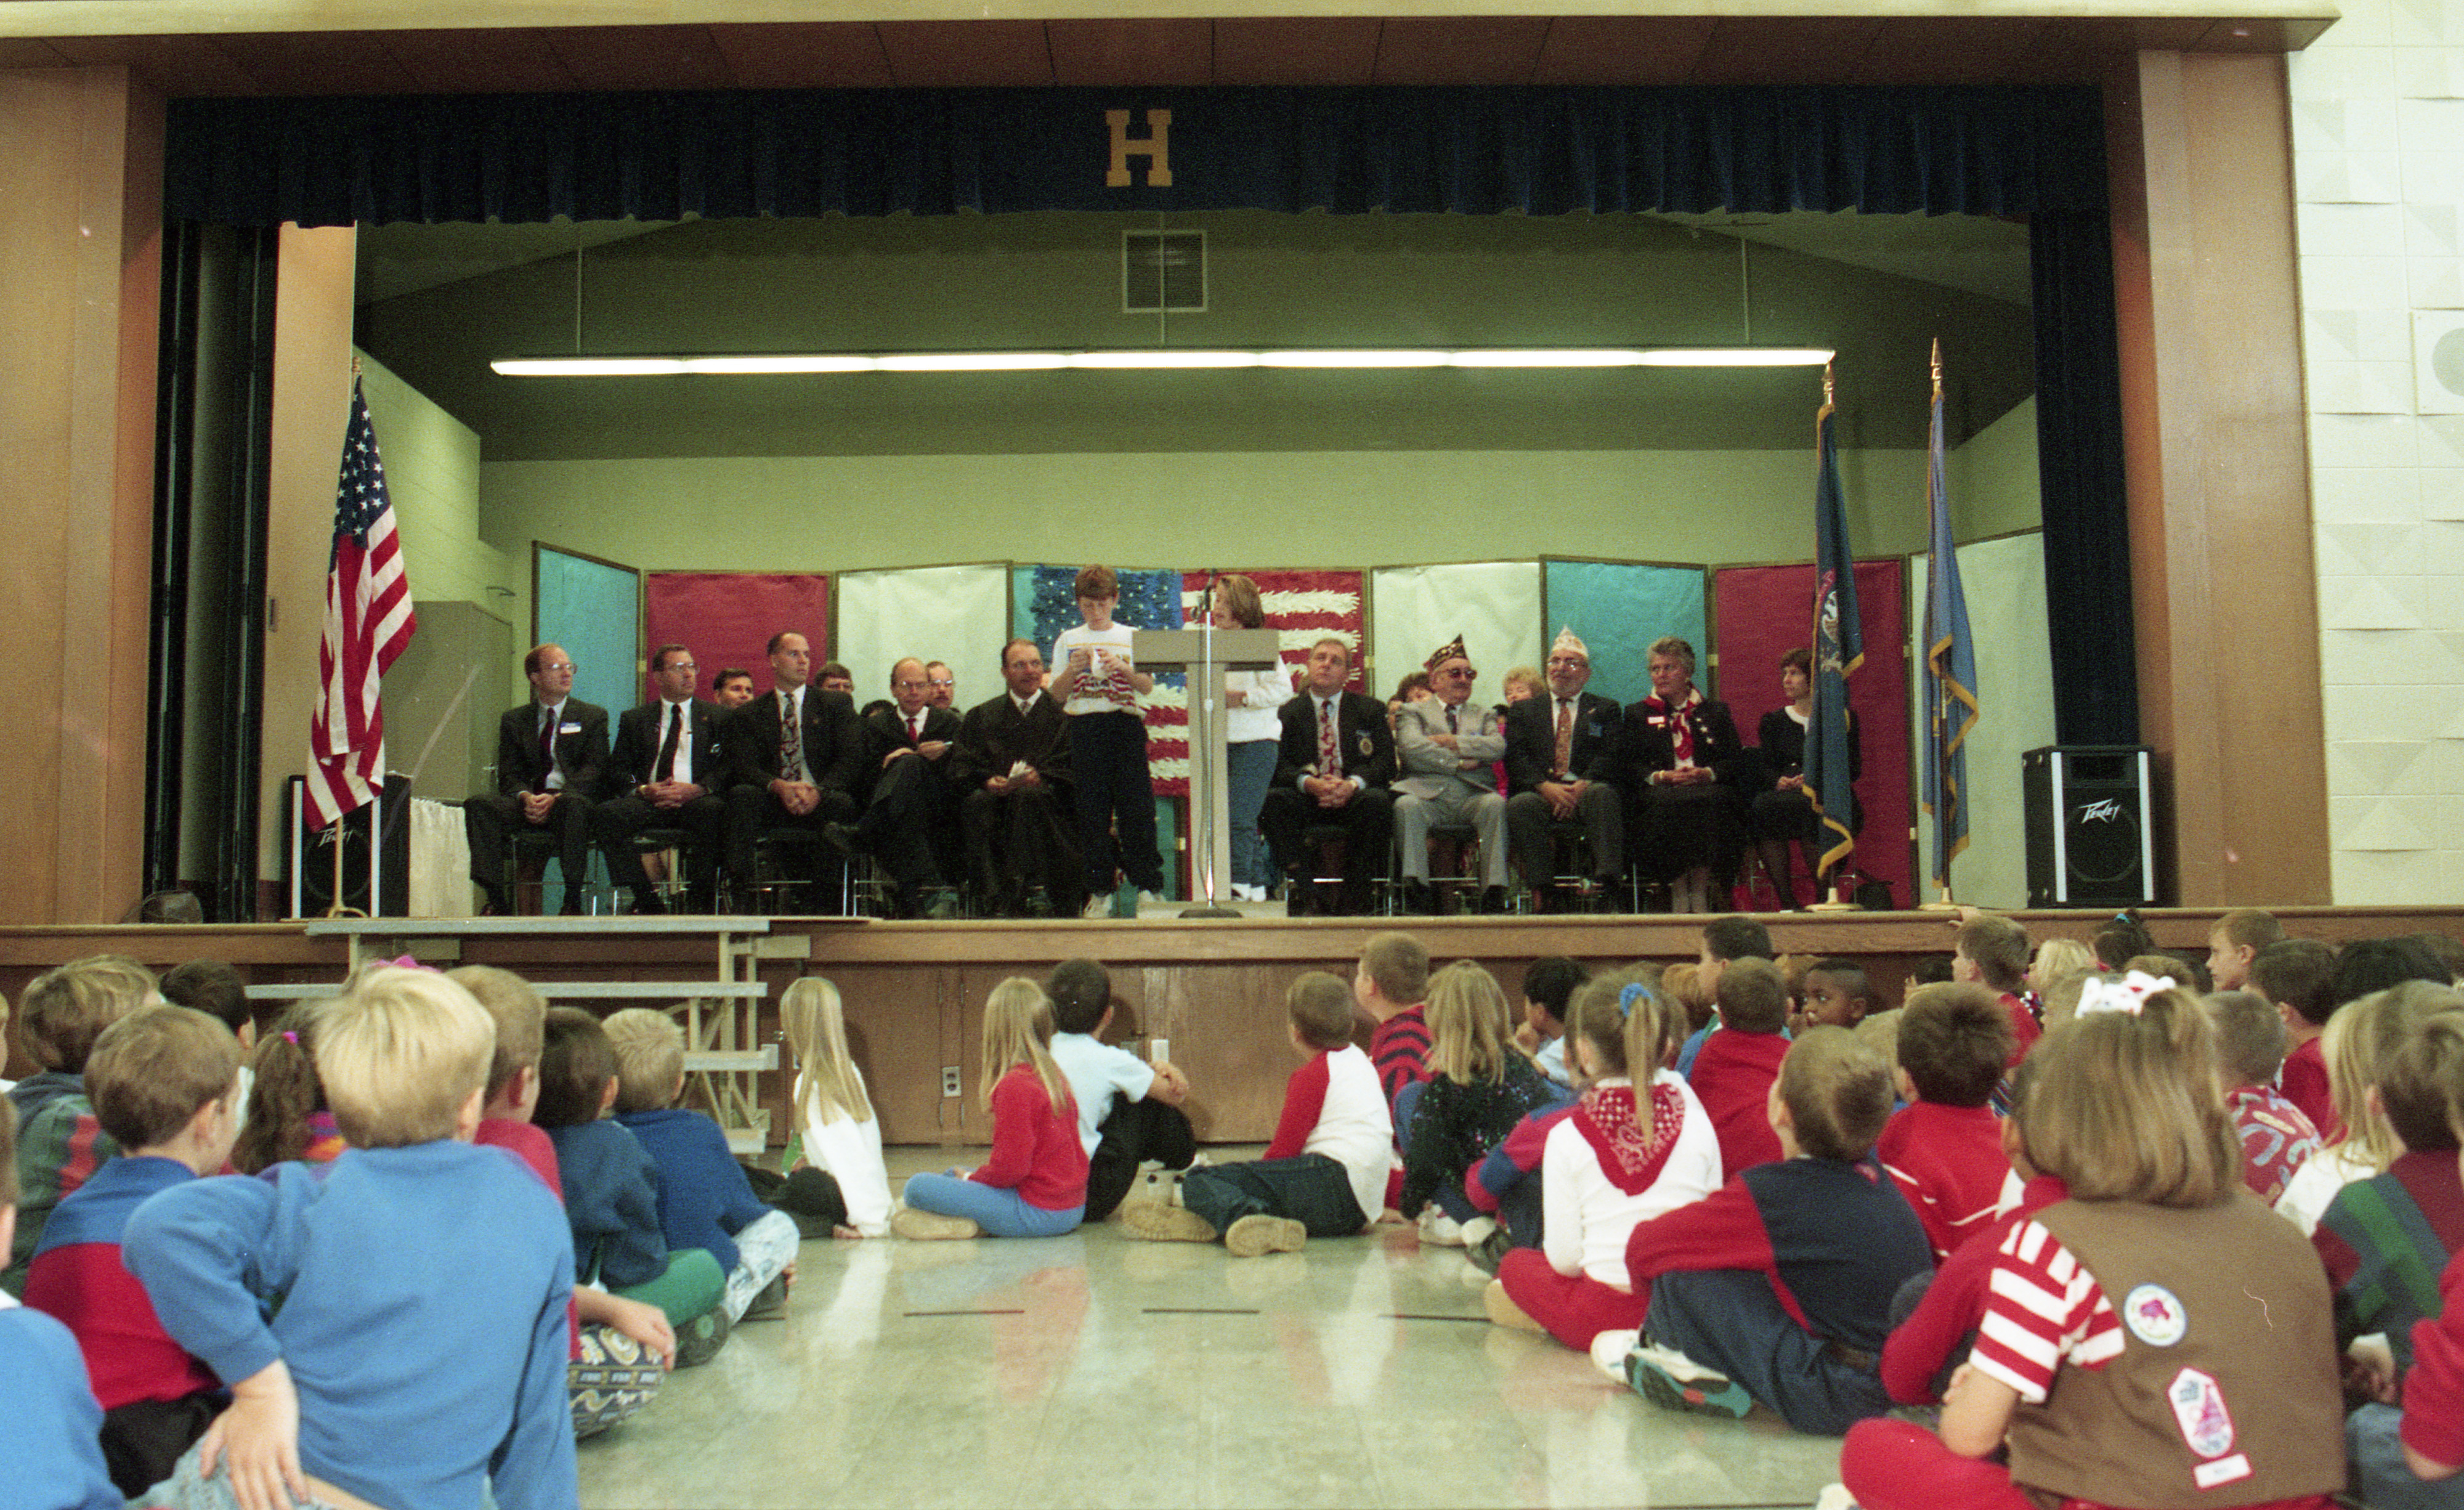 Saline Houghton Elementary School Students Watch Citizenship Ceremony, October 1993 image